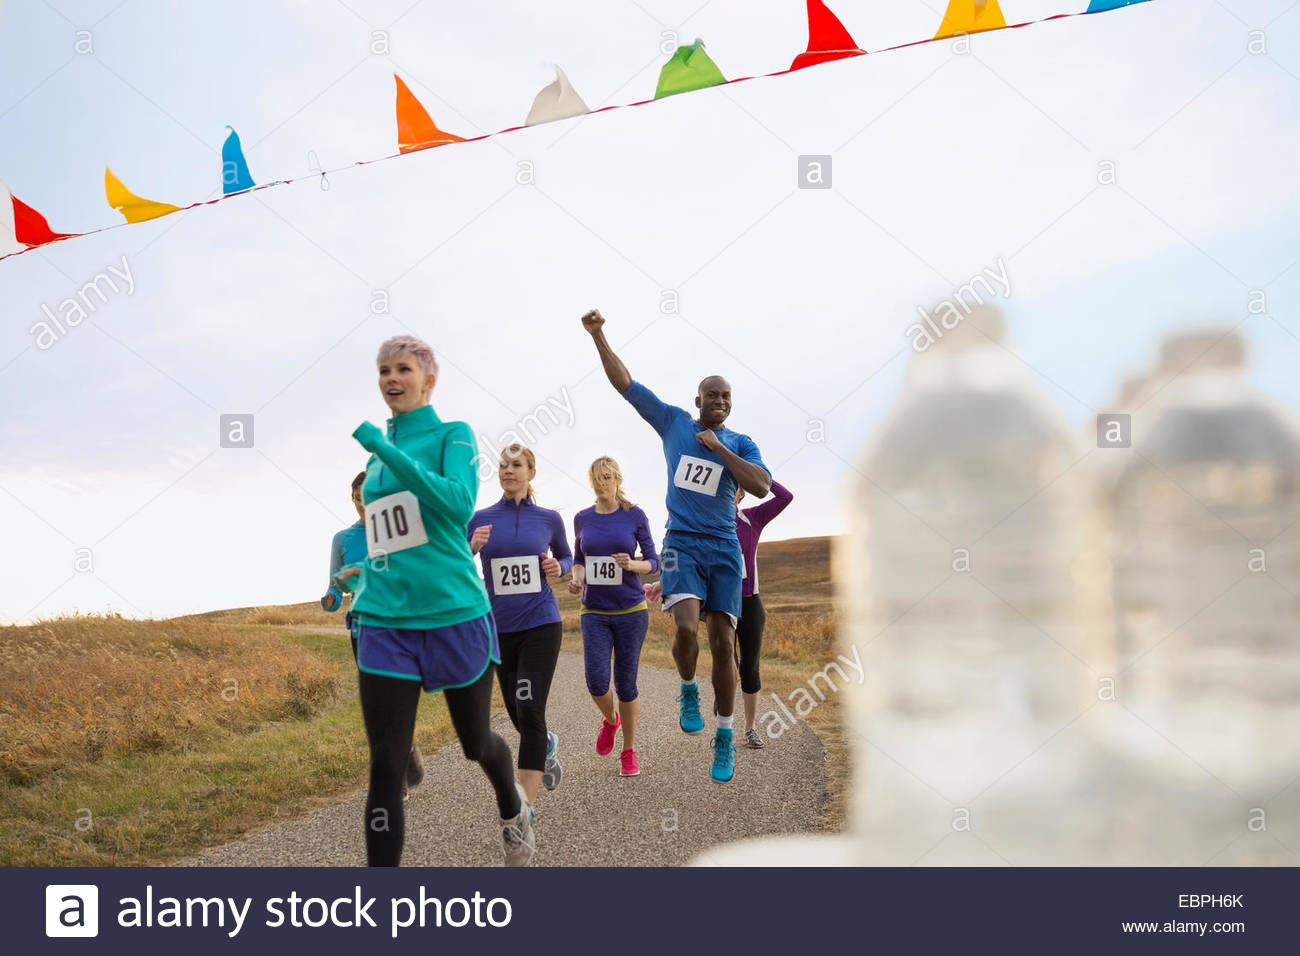 Cheering runners approaching finish line - Stock Image